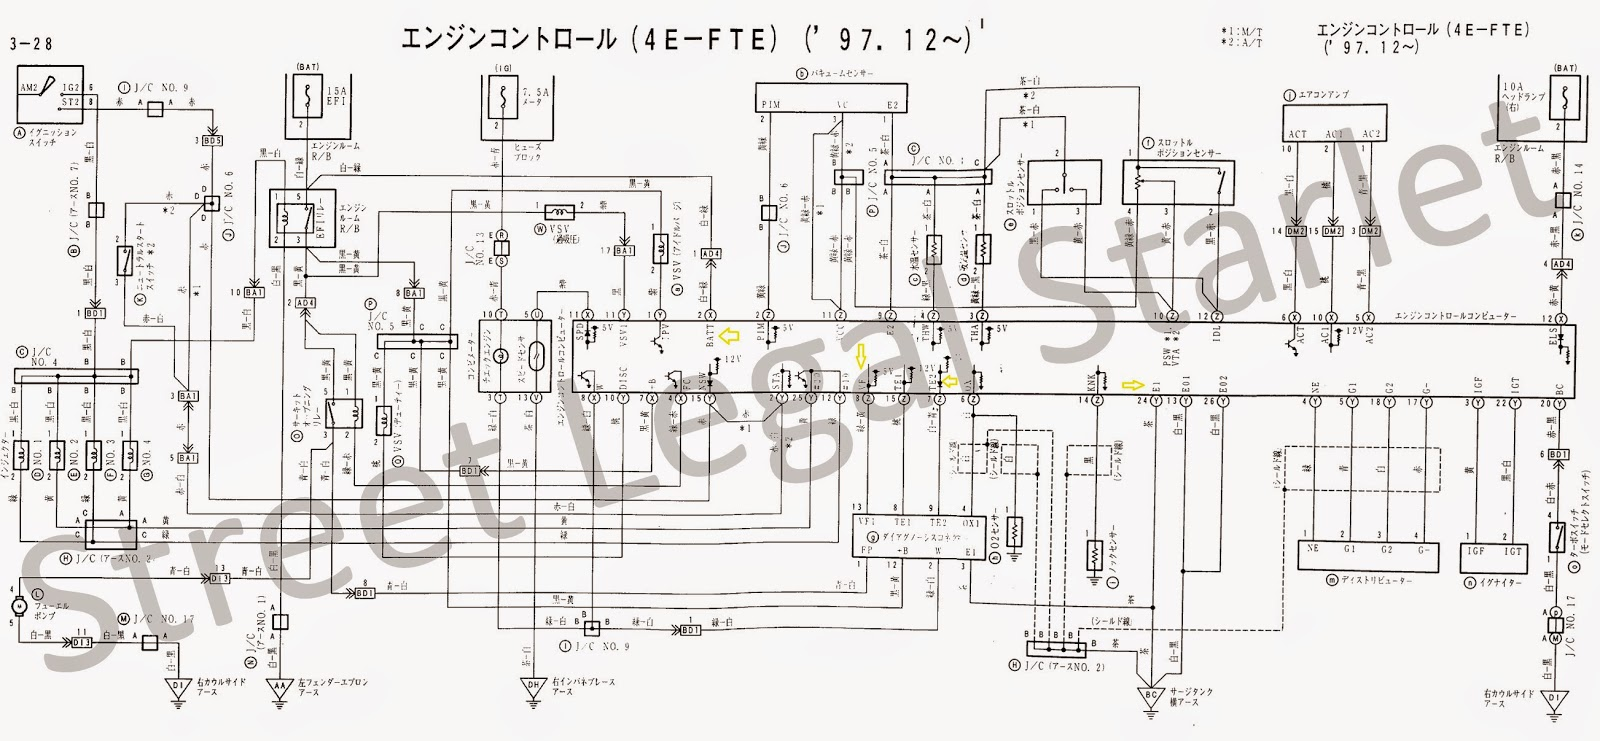 Toyota Carina Electrical Wiring Diagram Manual 1982 98598